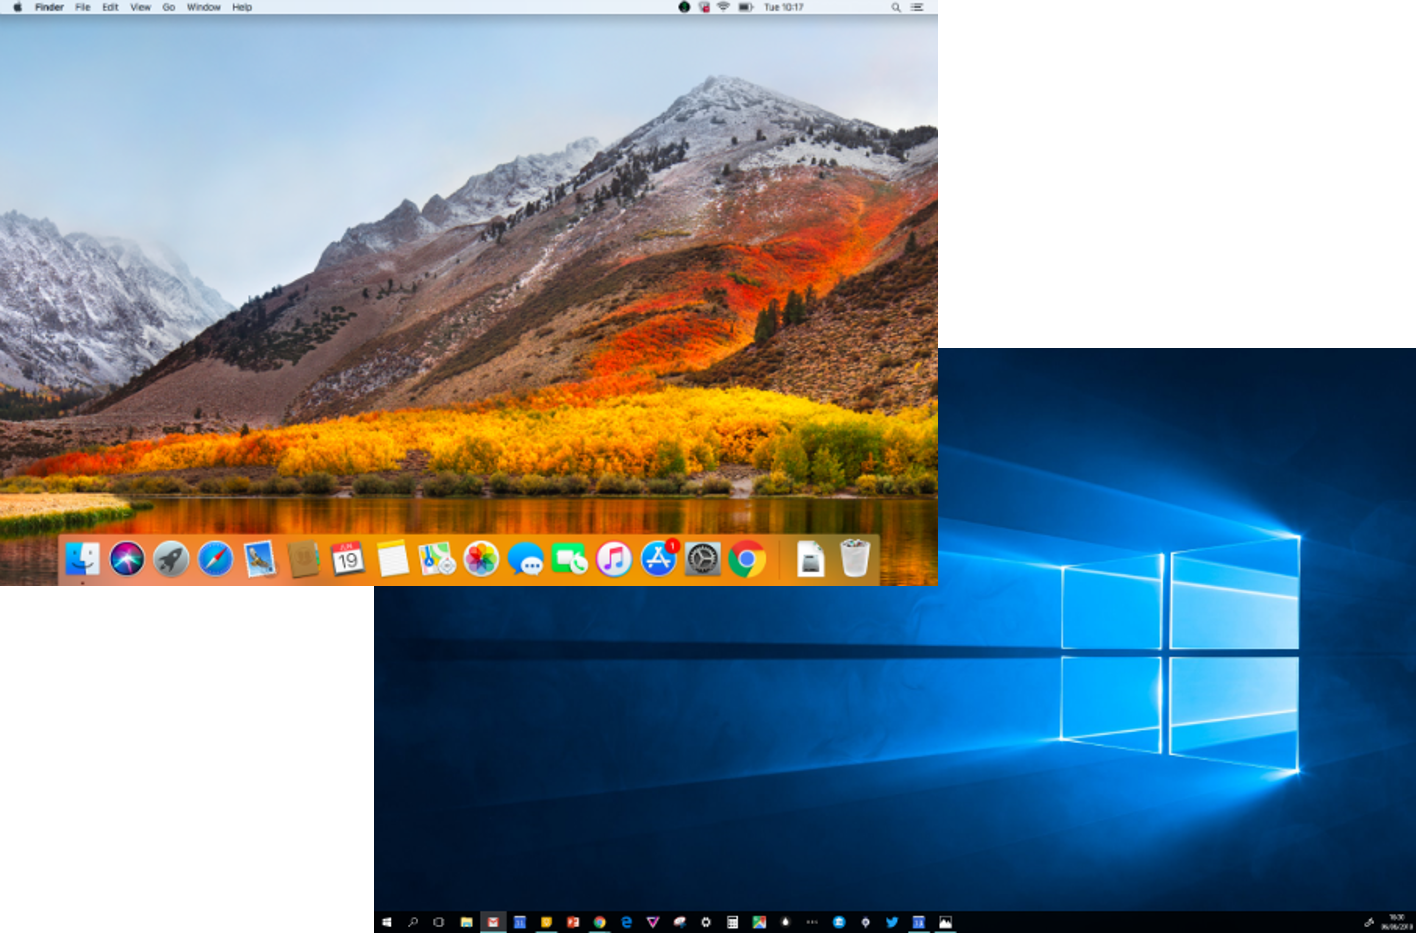 The default desktops of Mac and Windows operating systems